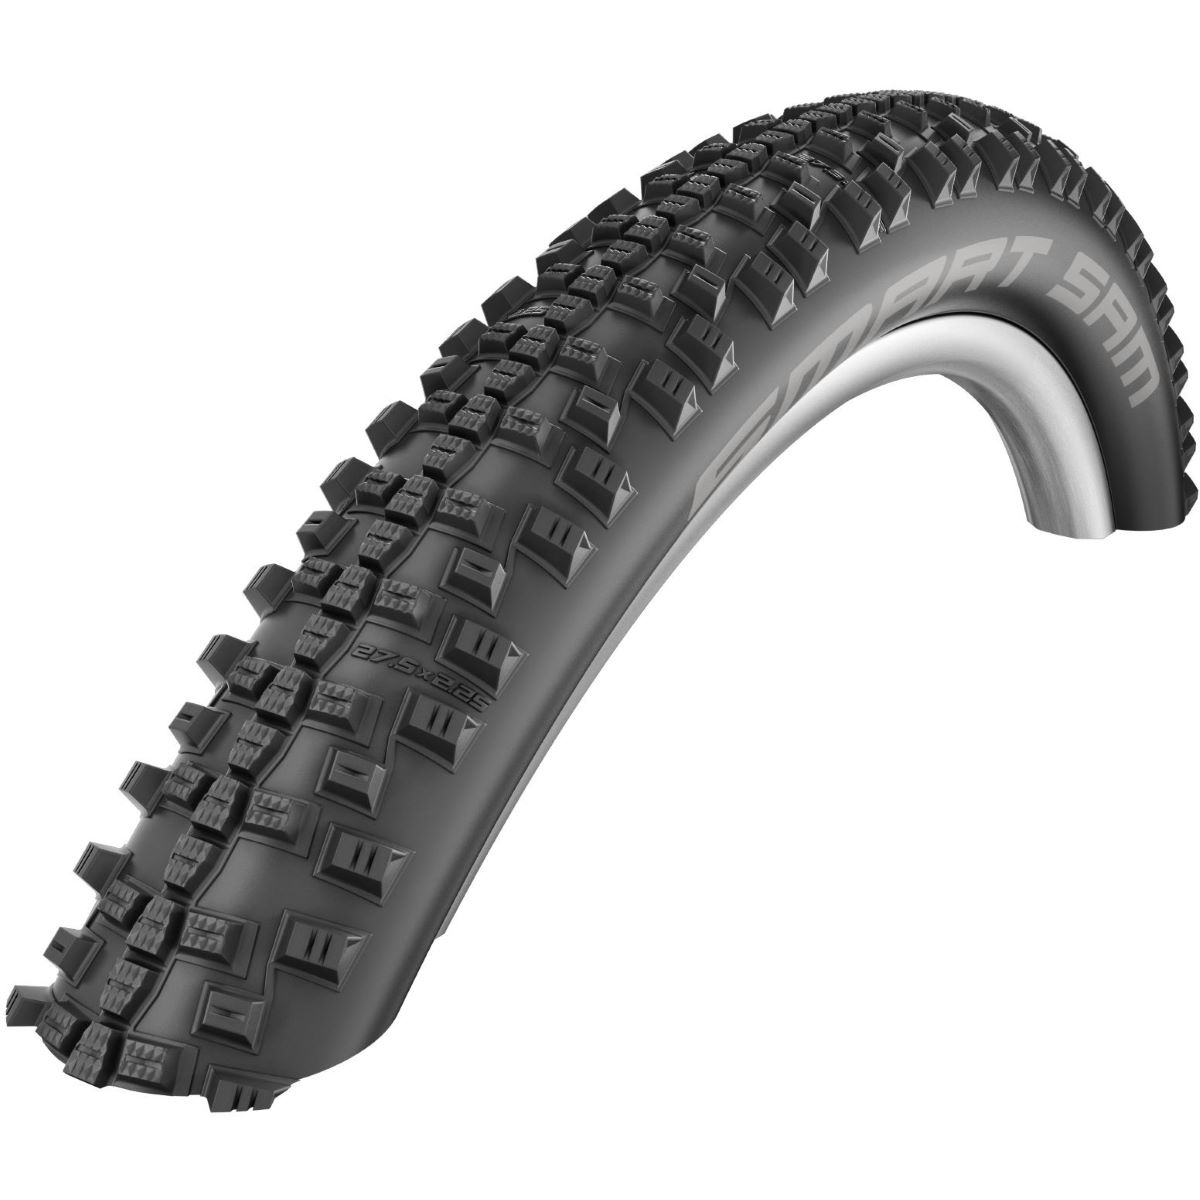 Schwalbe Smart Sam Performance MTB-däck - Däck